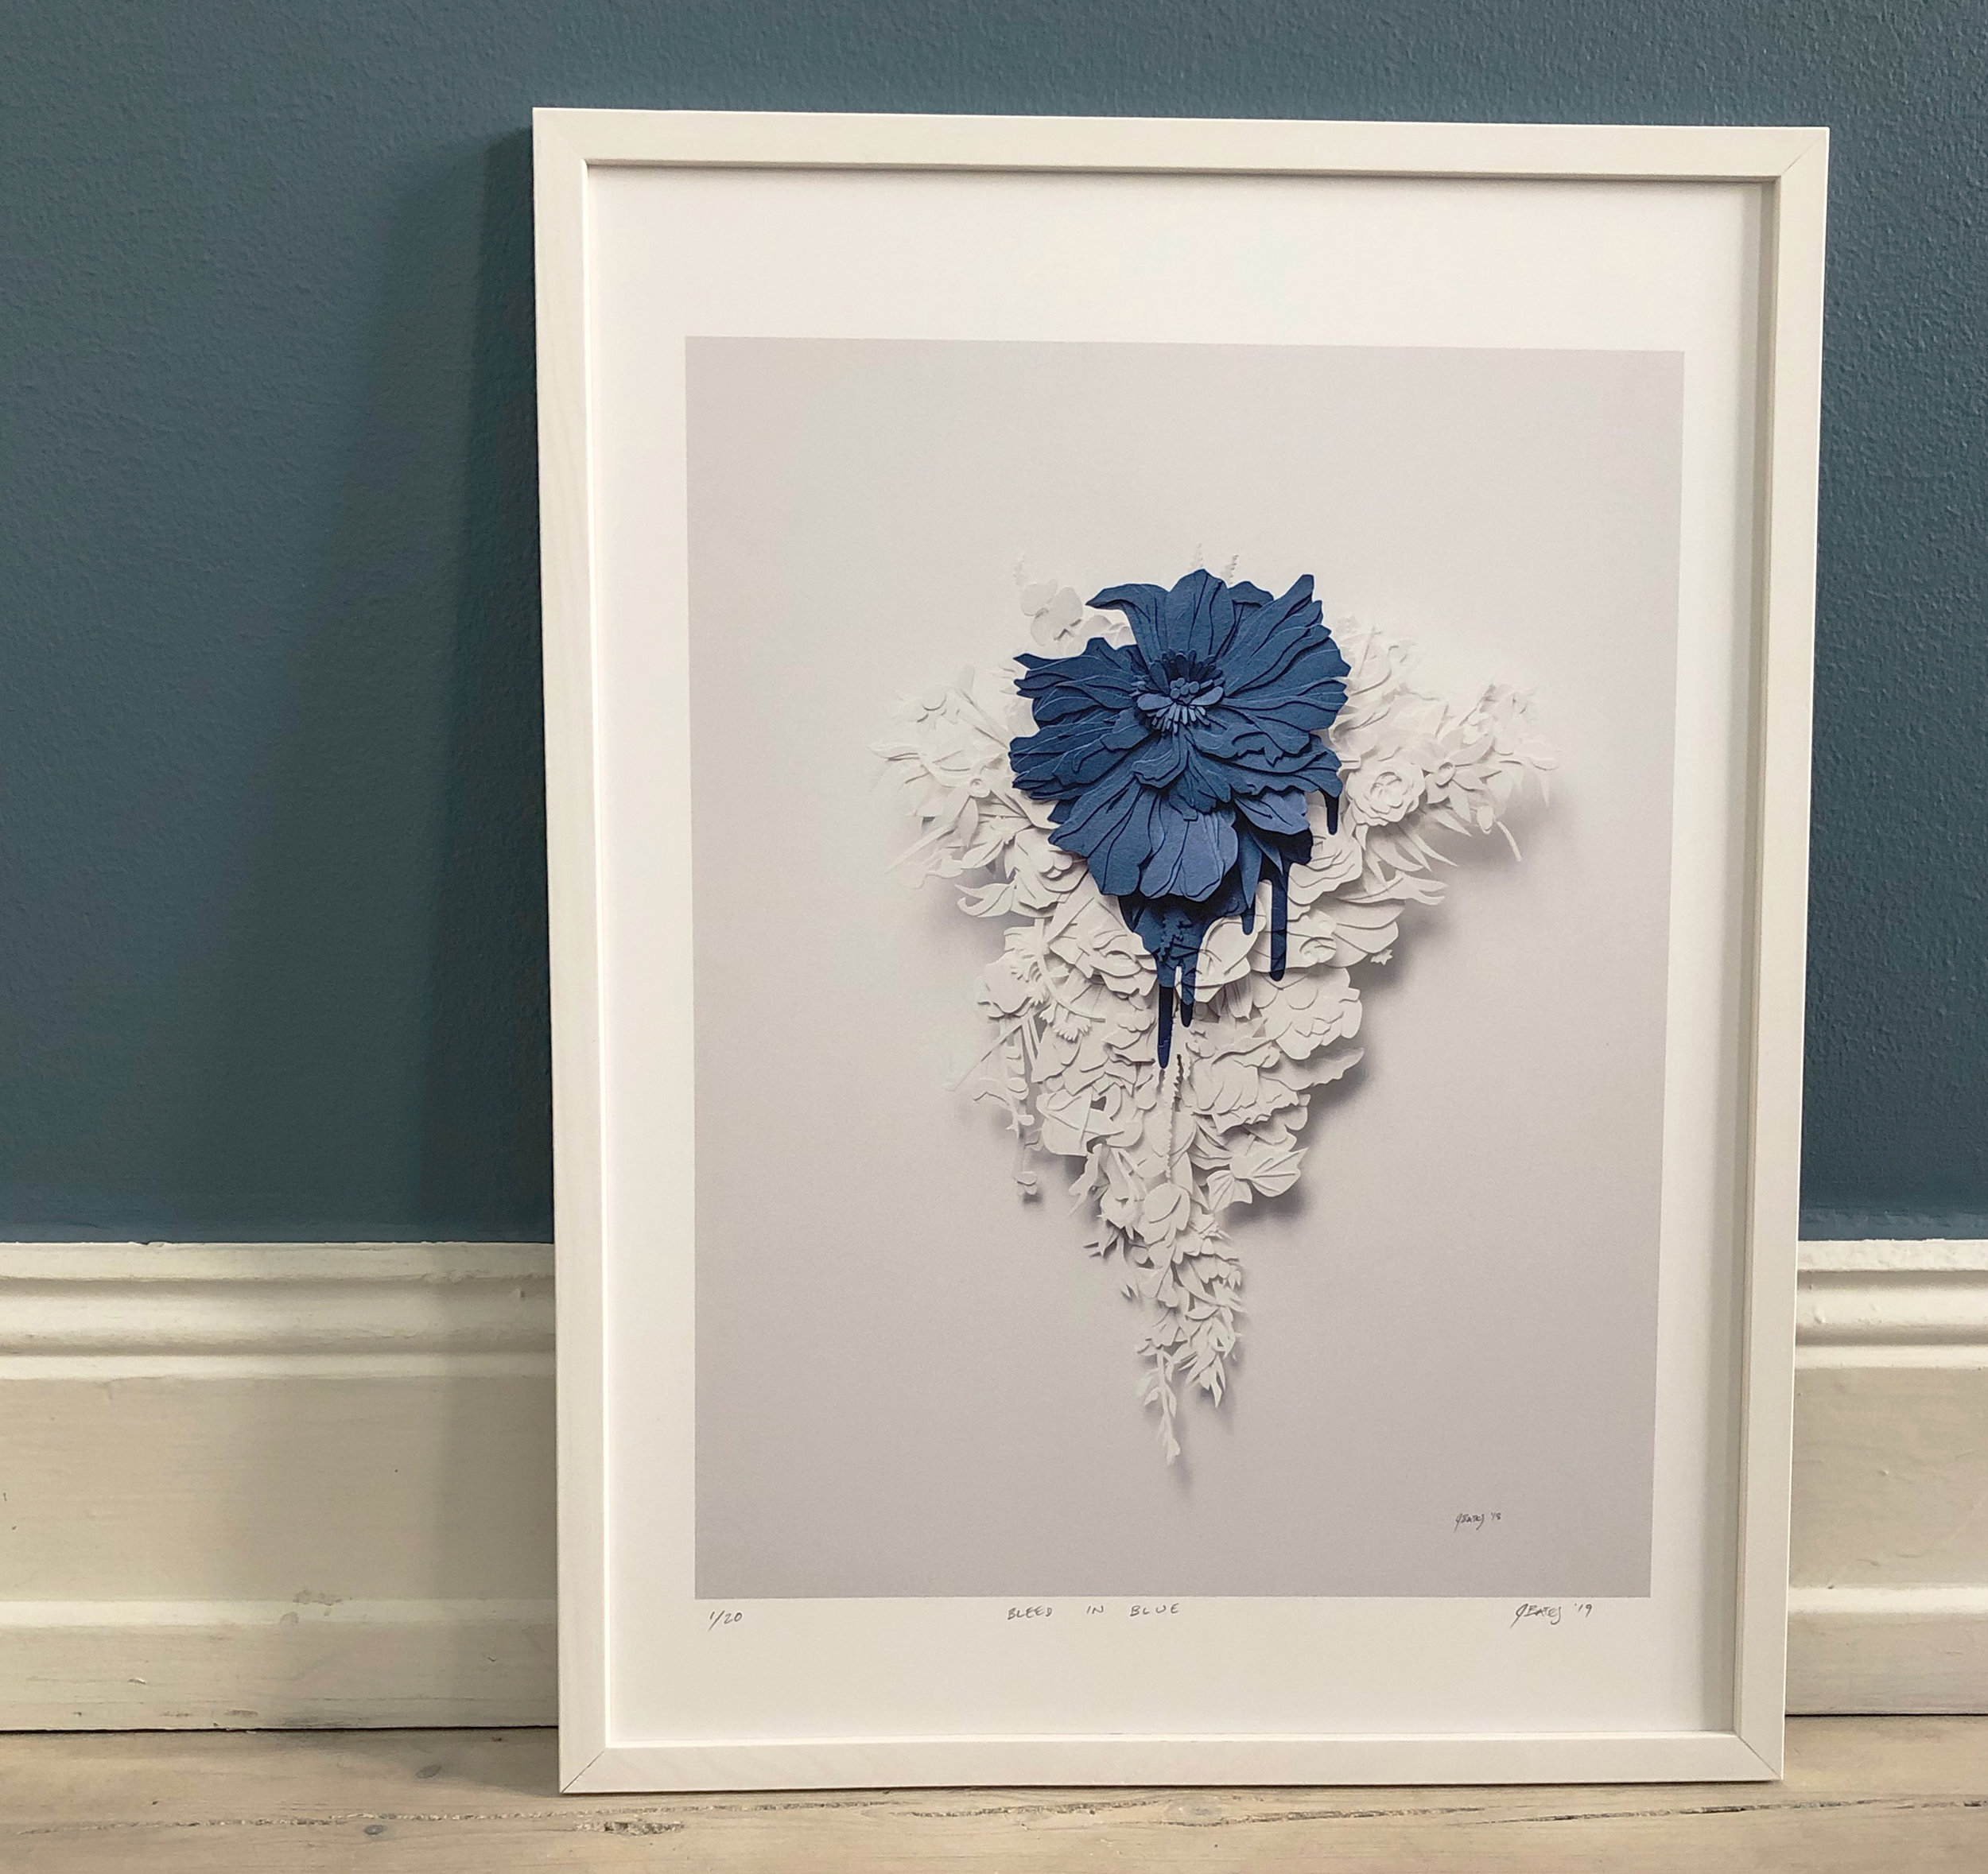 Bleed in Blue Print - This is a hi-res digital print of the piece Bleed in Blue by Joey Bates. The edition is limited to 20 prints.Paper size: 33.02 x 48.26 cm (13 x 19 inches) Image size: 25 x 31.5 cm (9.75 x 12 inches)Archival ink, 100 gsm archival paper, signed and numbered by the artist$100.00 - This includes shipping* from Sweden(Frame not included)